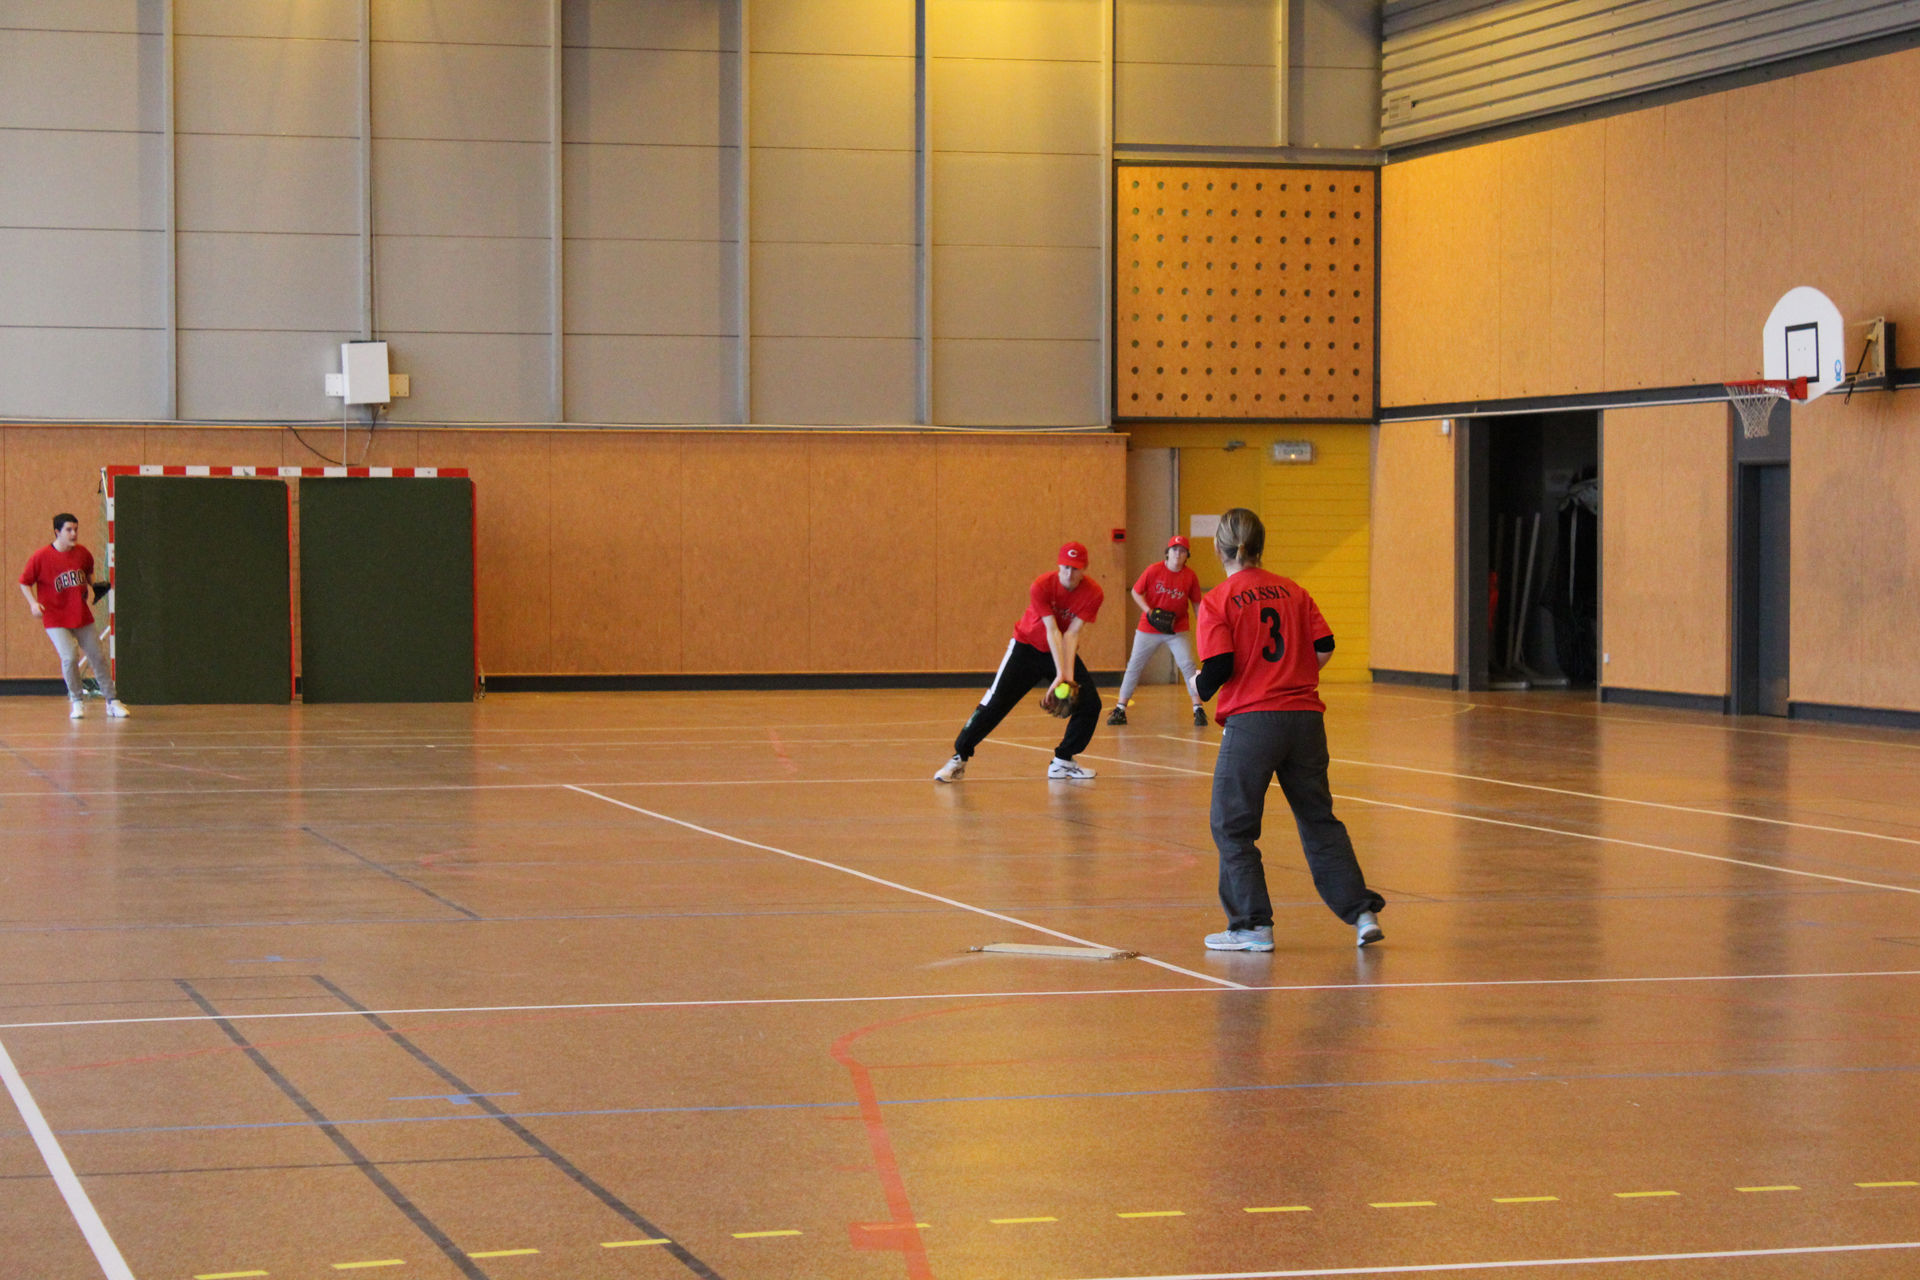 2011-02-06 Soft Mixte Indoor a Cergy (40)-resize